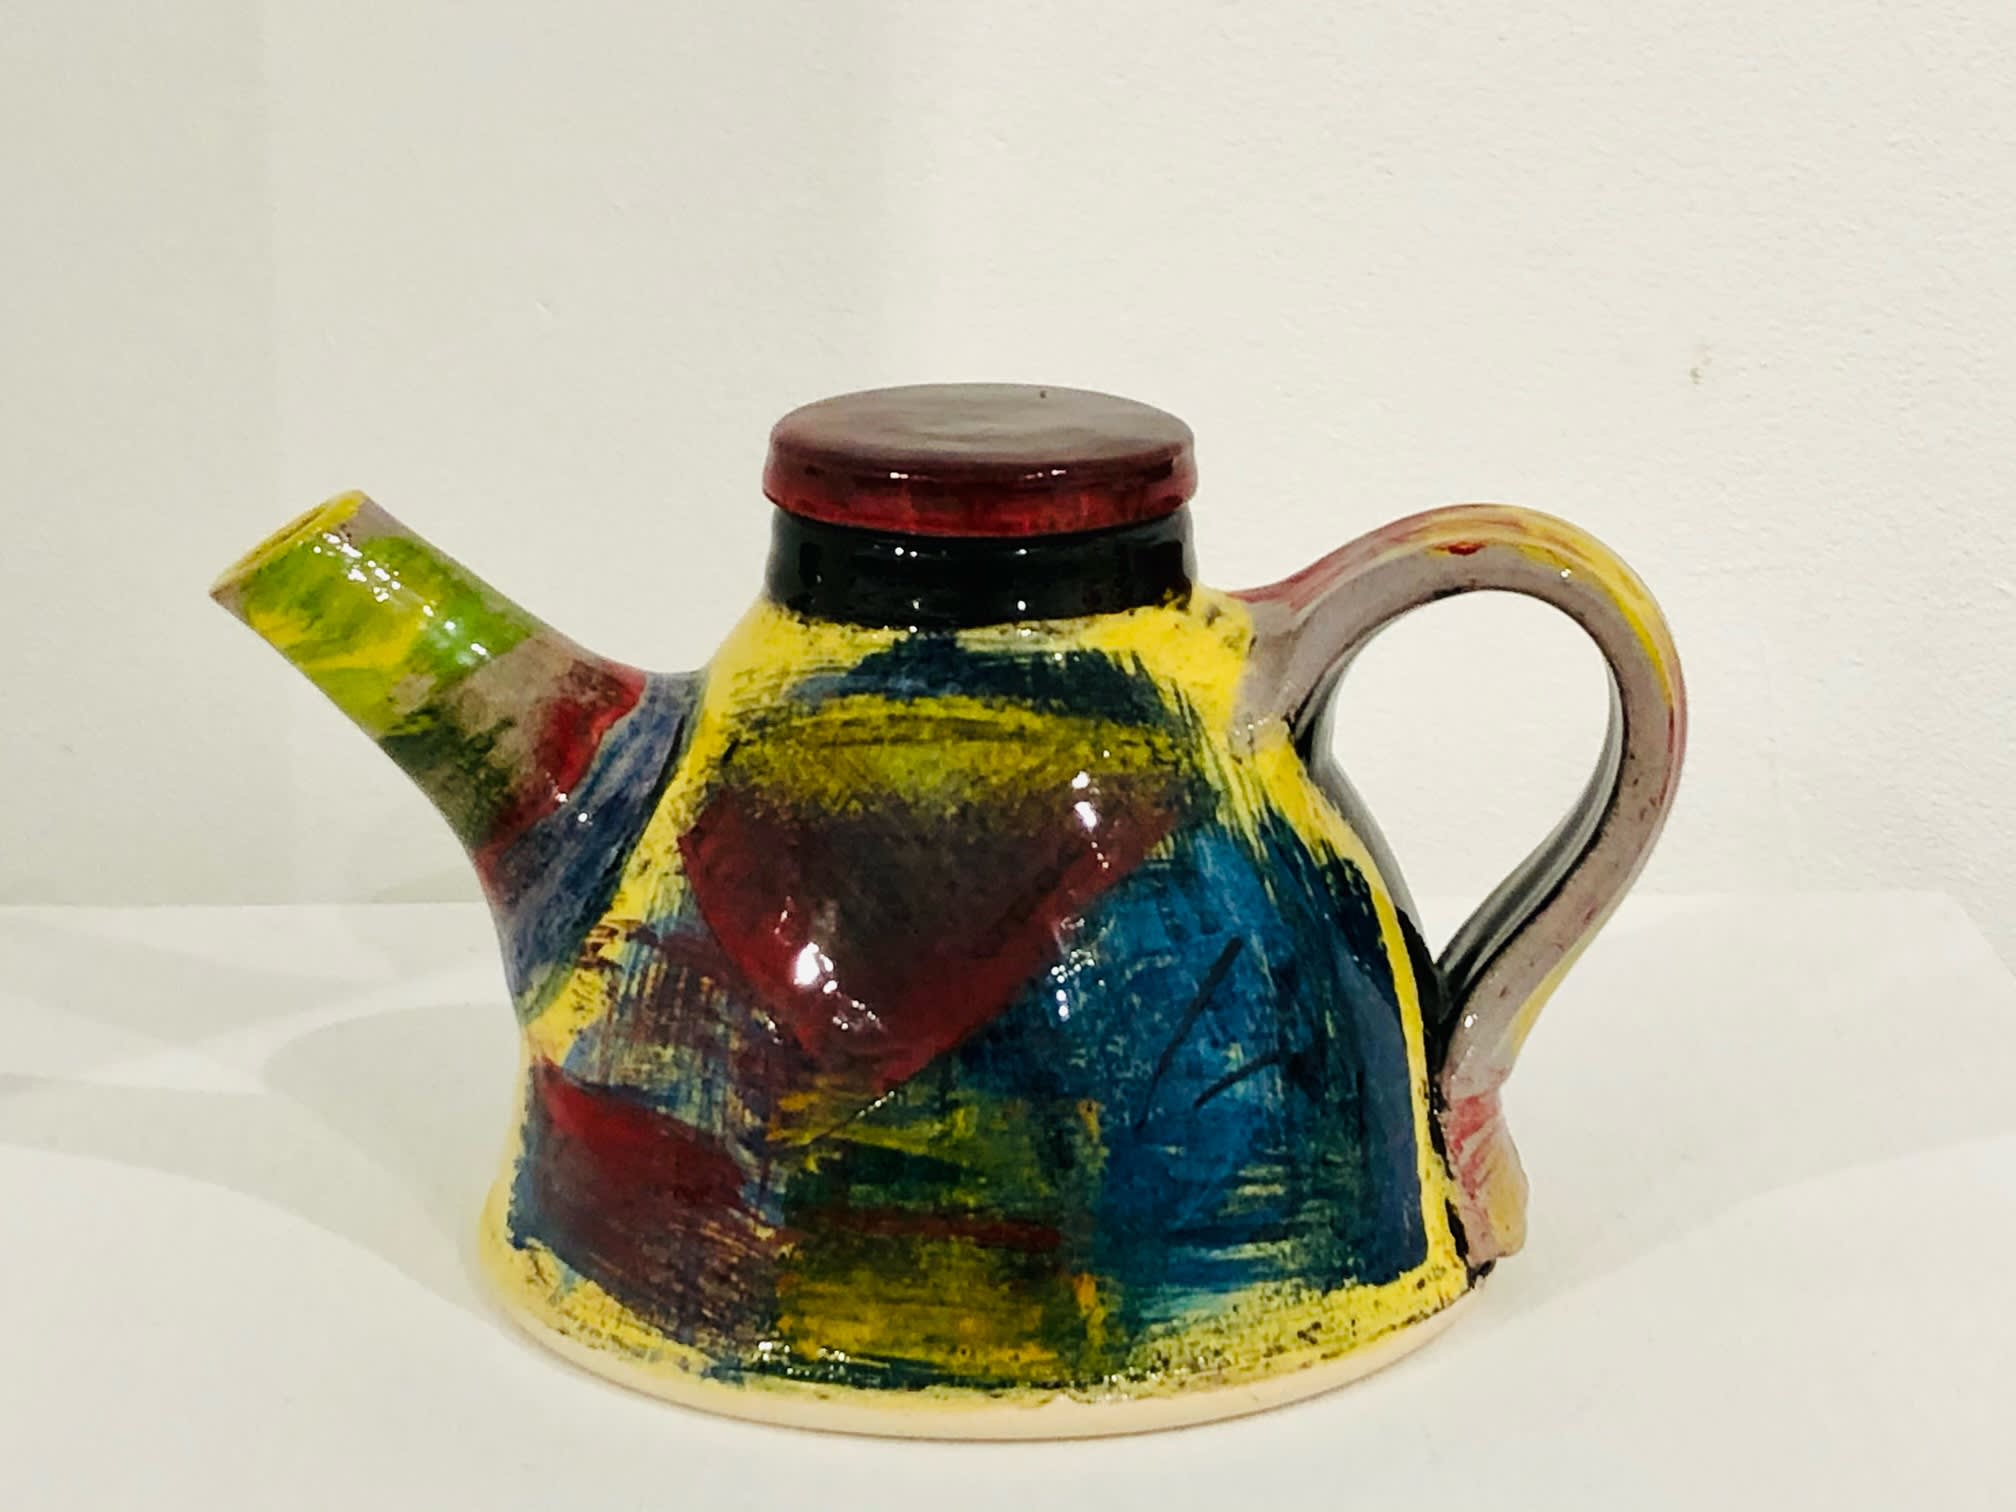 """<span class=""""link fancybox-details-link""""><a href=""""/artists/100-john-pollex/works/7321-john-pollex-teapot-2020/"""">View Detail Page</a></span><div class=""""artist""""><strong>John Pollex</strong></div> b. 1941 <div class=""""title""""><em>Teapot</em>, 2020</div> <div class=""""signed_and_dated"""">impressed with the artist's seal mark 'JP'</div> <div class=""""medium"""">white earthenware decorated with coloured slips</div><div class=""""price"""">£220.00</div><div class=""""copyright_line"""">£22 x 10 month 0% APR</div>"""